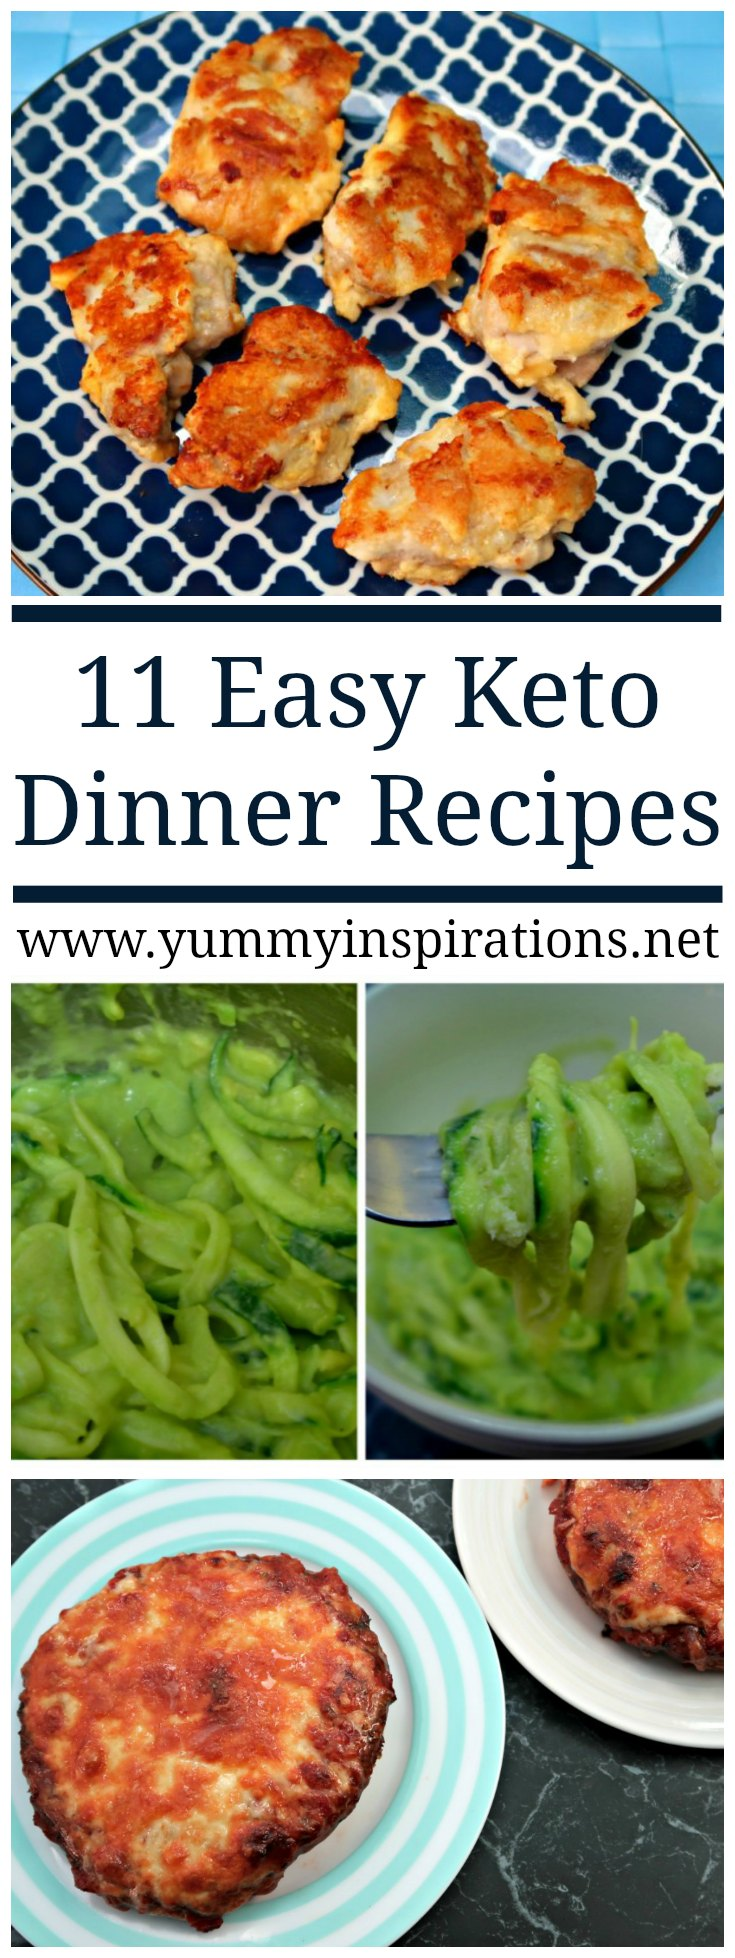 11 easy keto dinner recipes quick low carb ketogenic for Quick and easy low carb dinner recipes